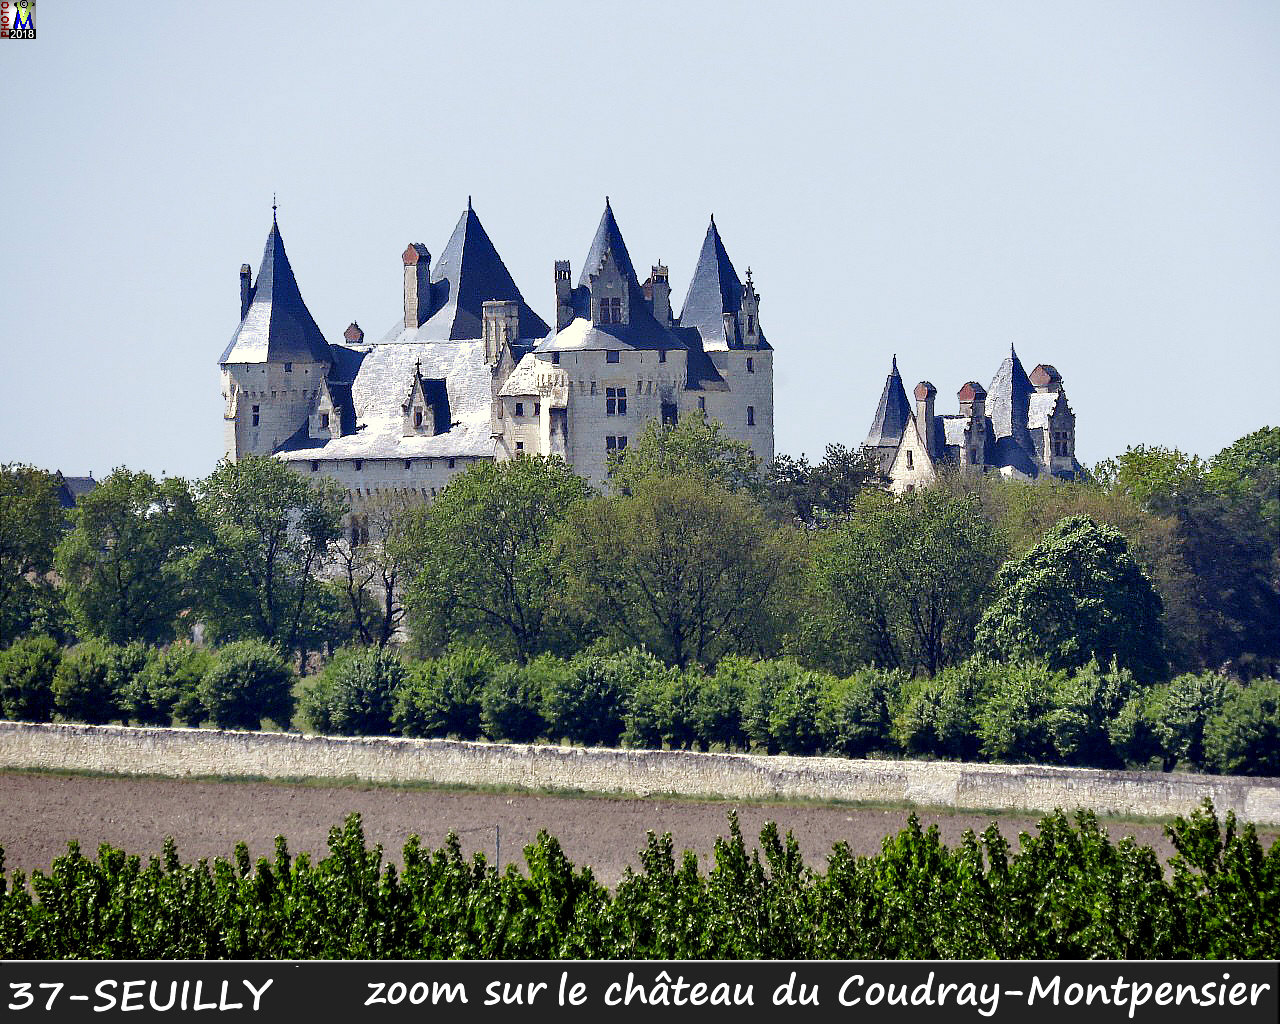 37SEUILLY_chateau_1012.jpg